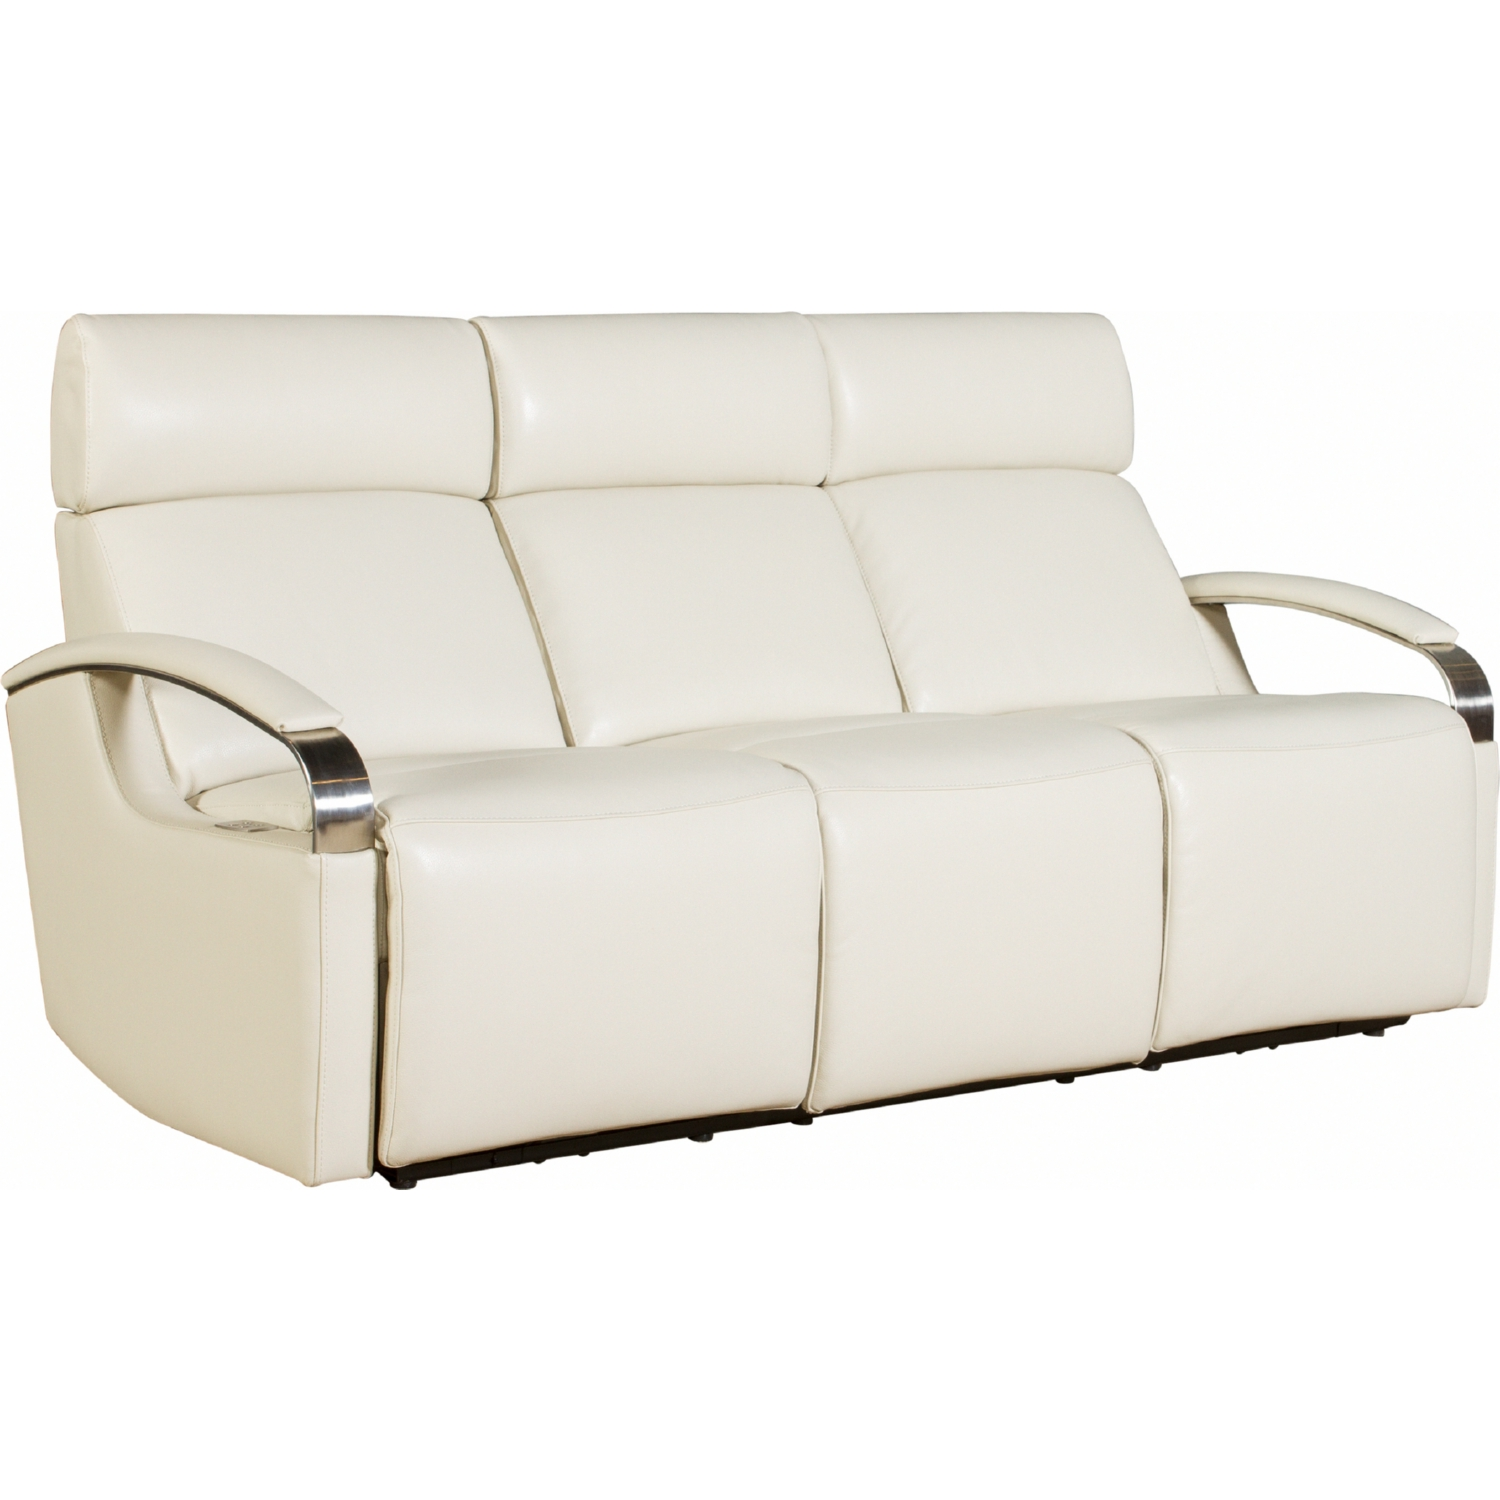 Barcalounger sofa recliners barcalounger casual comfort for Furniture u save a lot